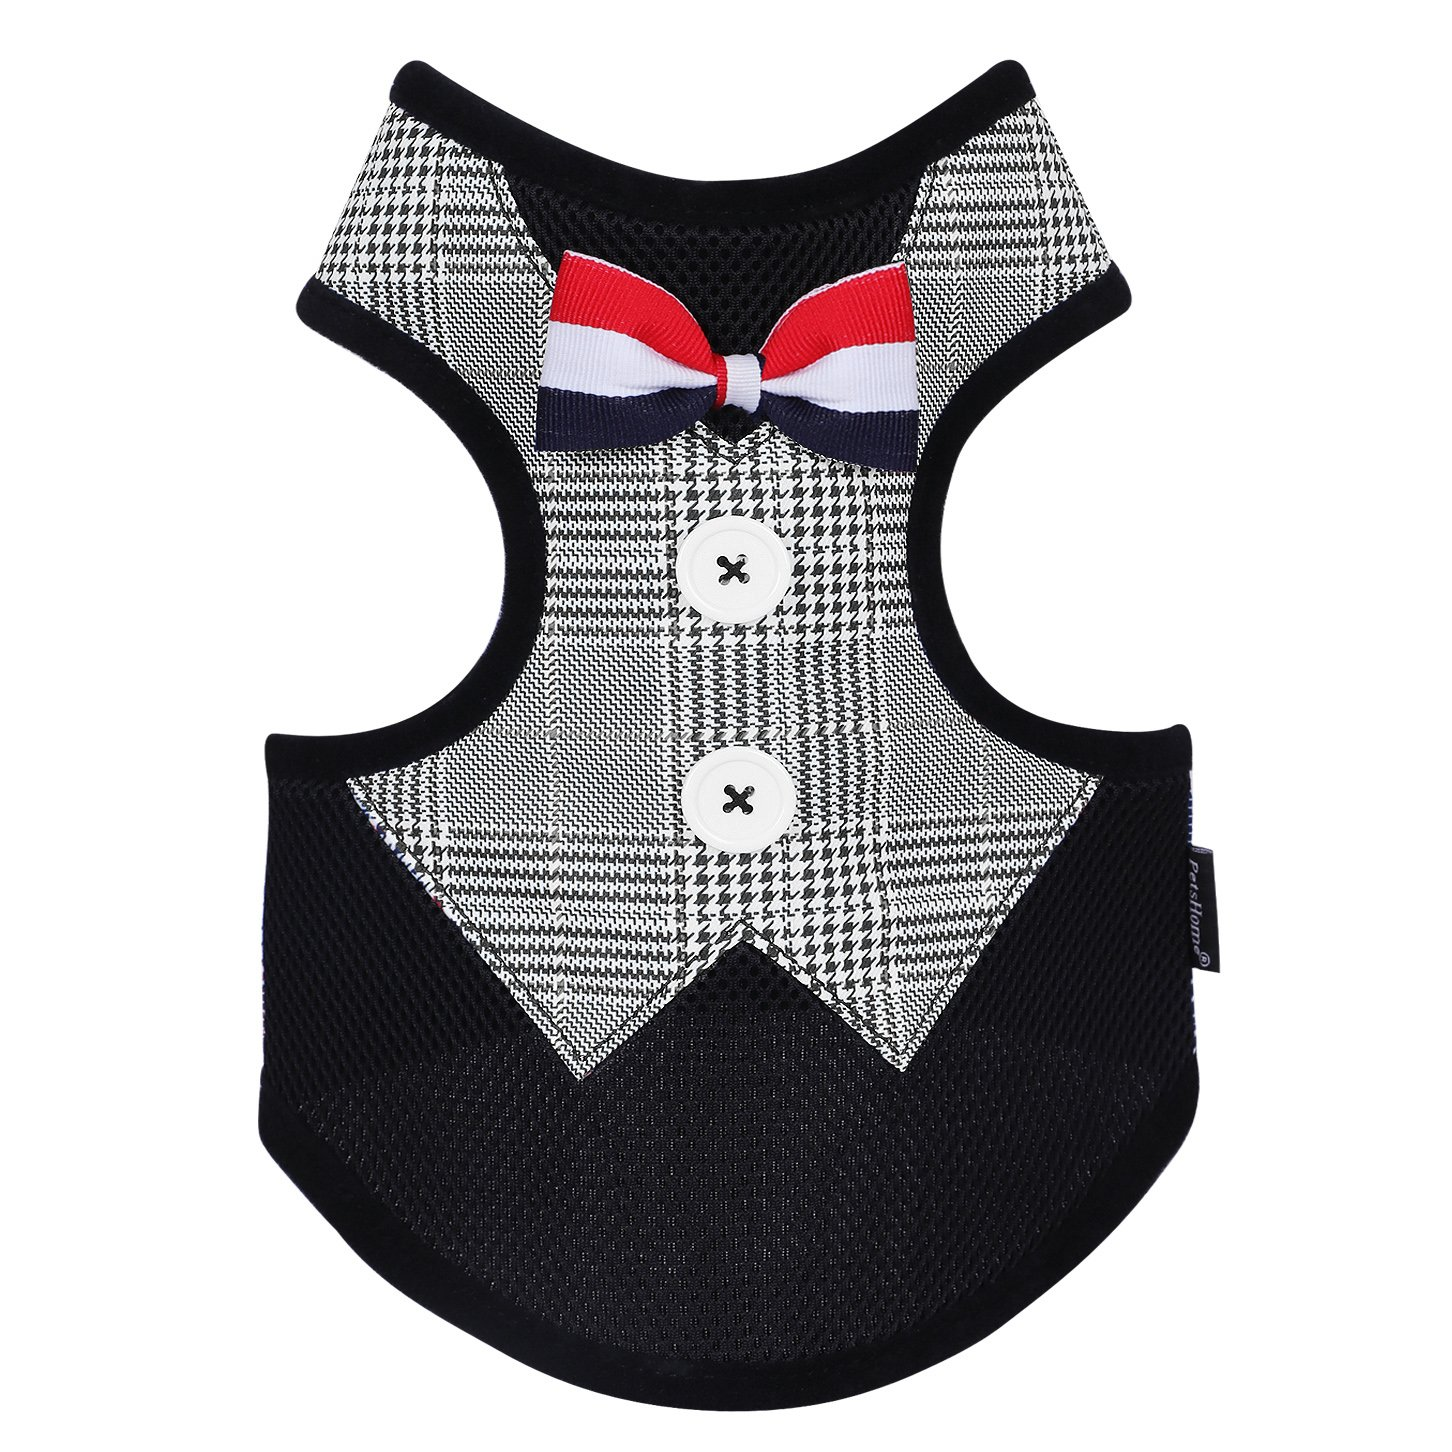 A-Black S A-Black S PetsHome Dog Clothes, Cat Clothes, Beautiful Soft Puppy Coat for Small Dog and Cat Small Black